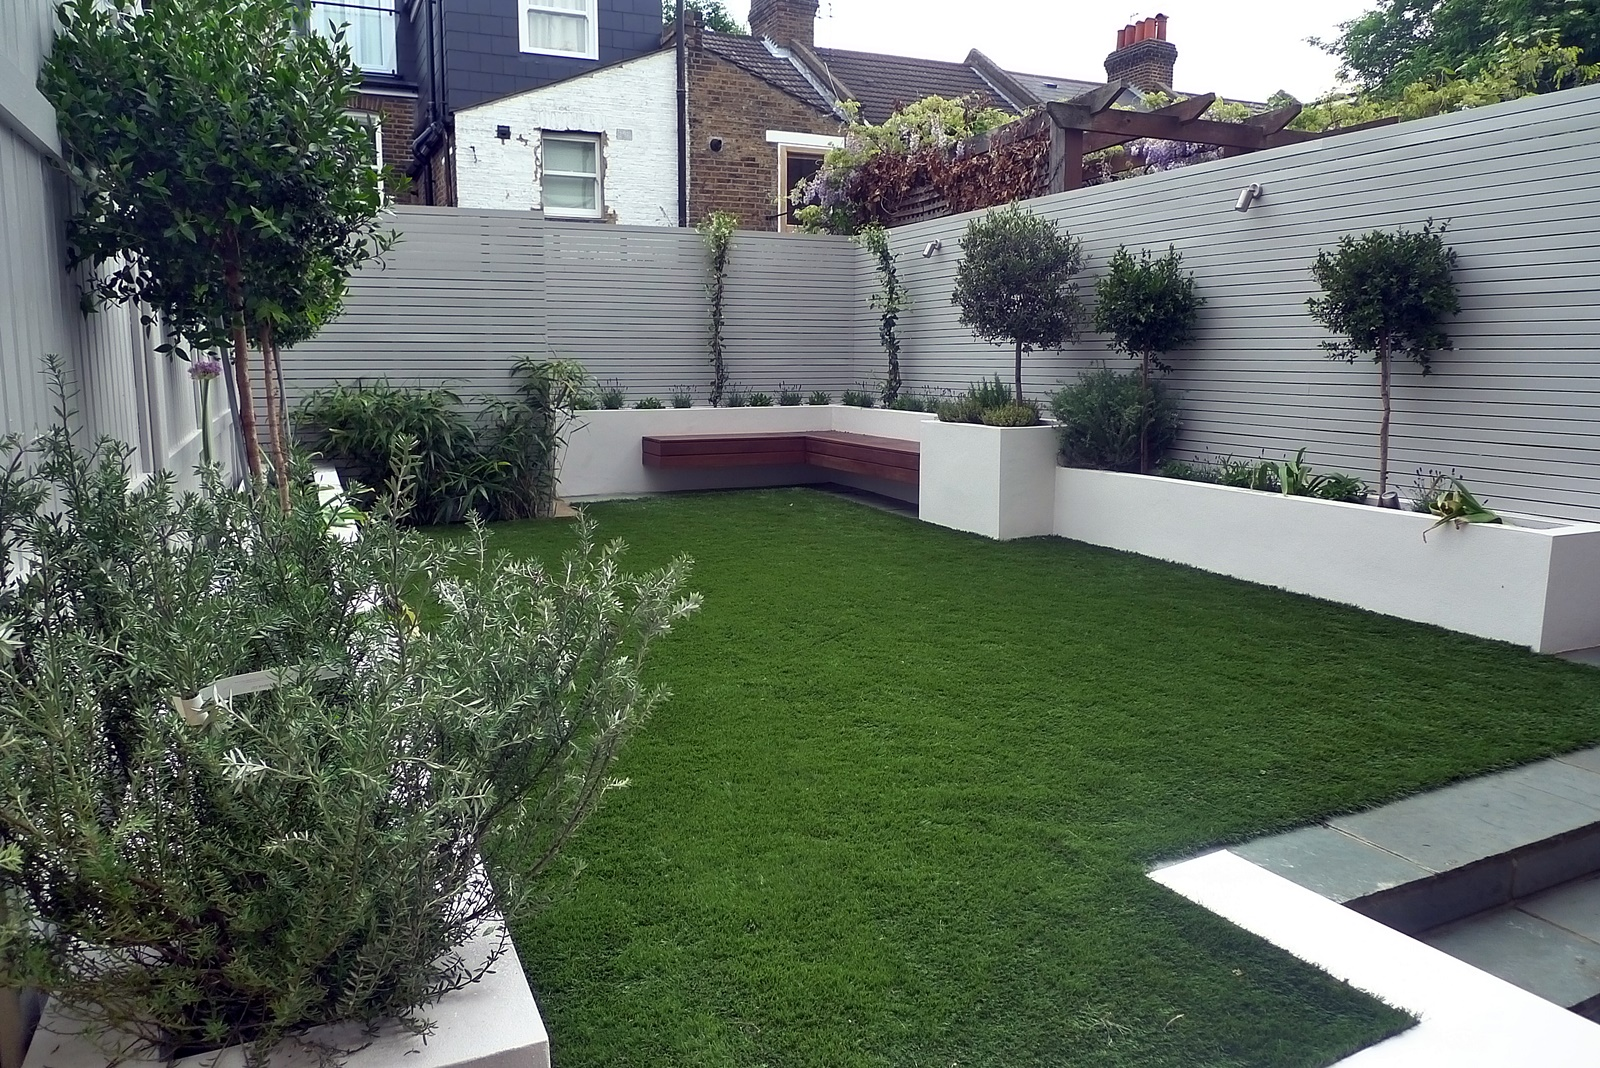 London garden blog london garden blog gardens from for Garden design plans uk